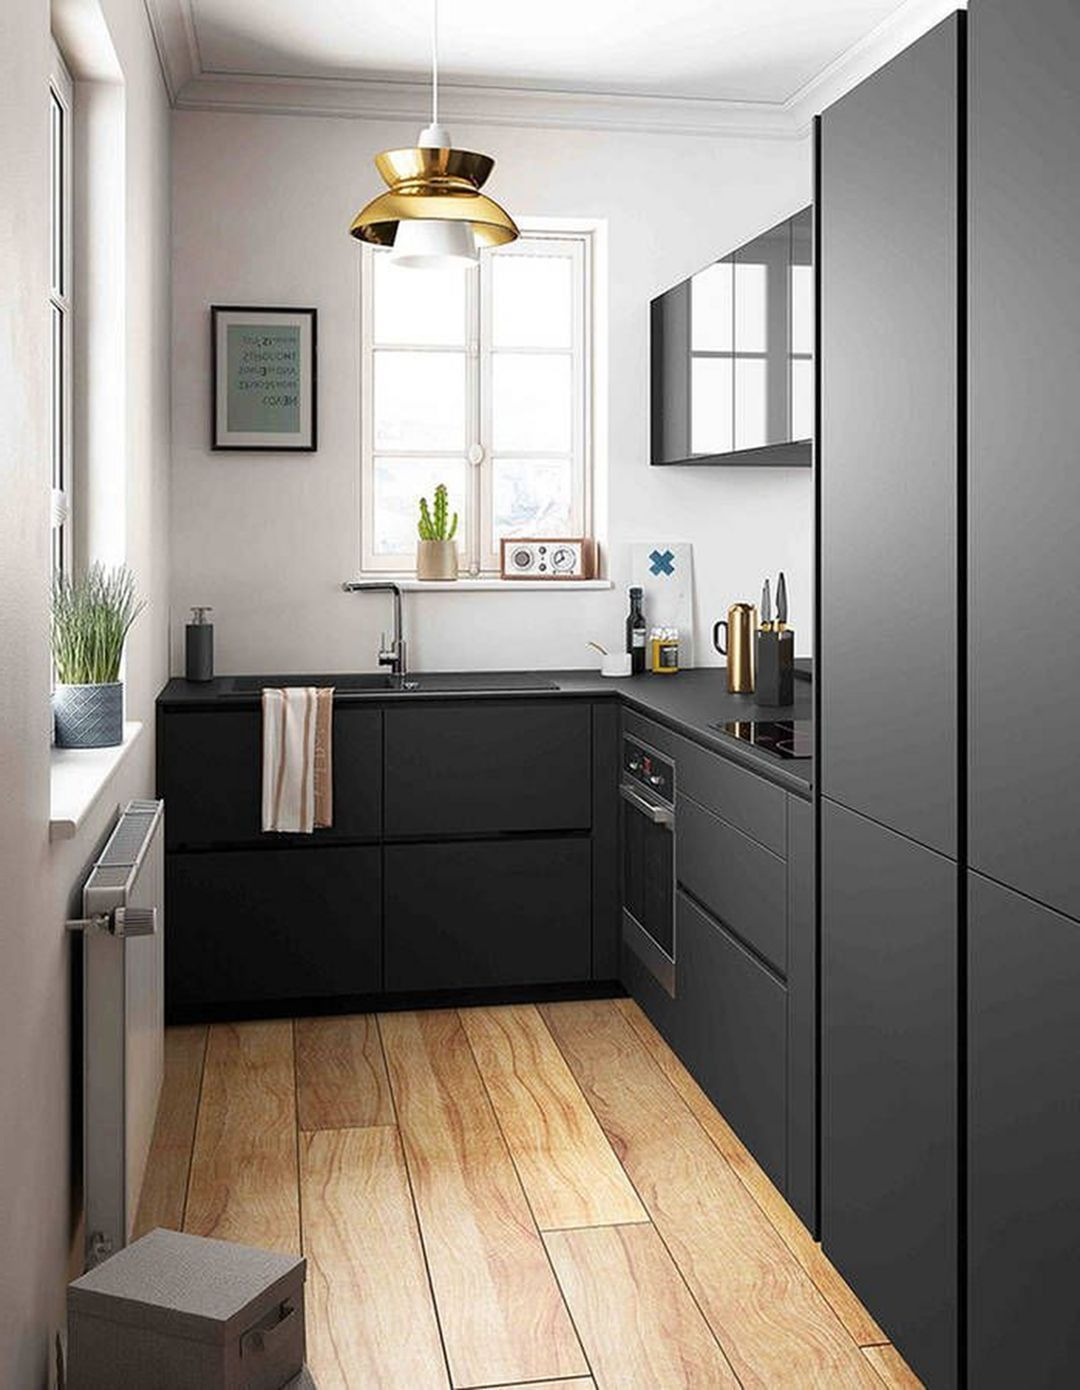 51 Lovely Kitchen Designs With A Touch Of Wood Small Modern